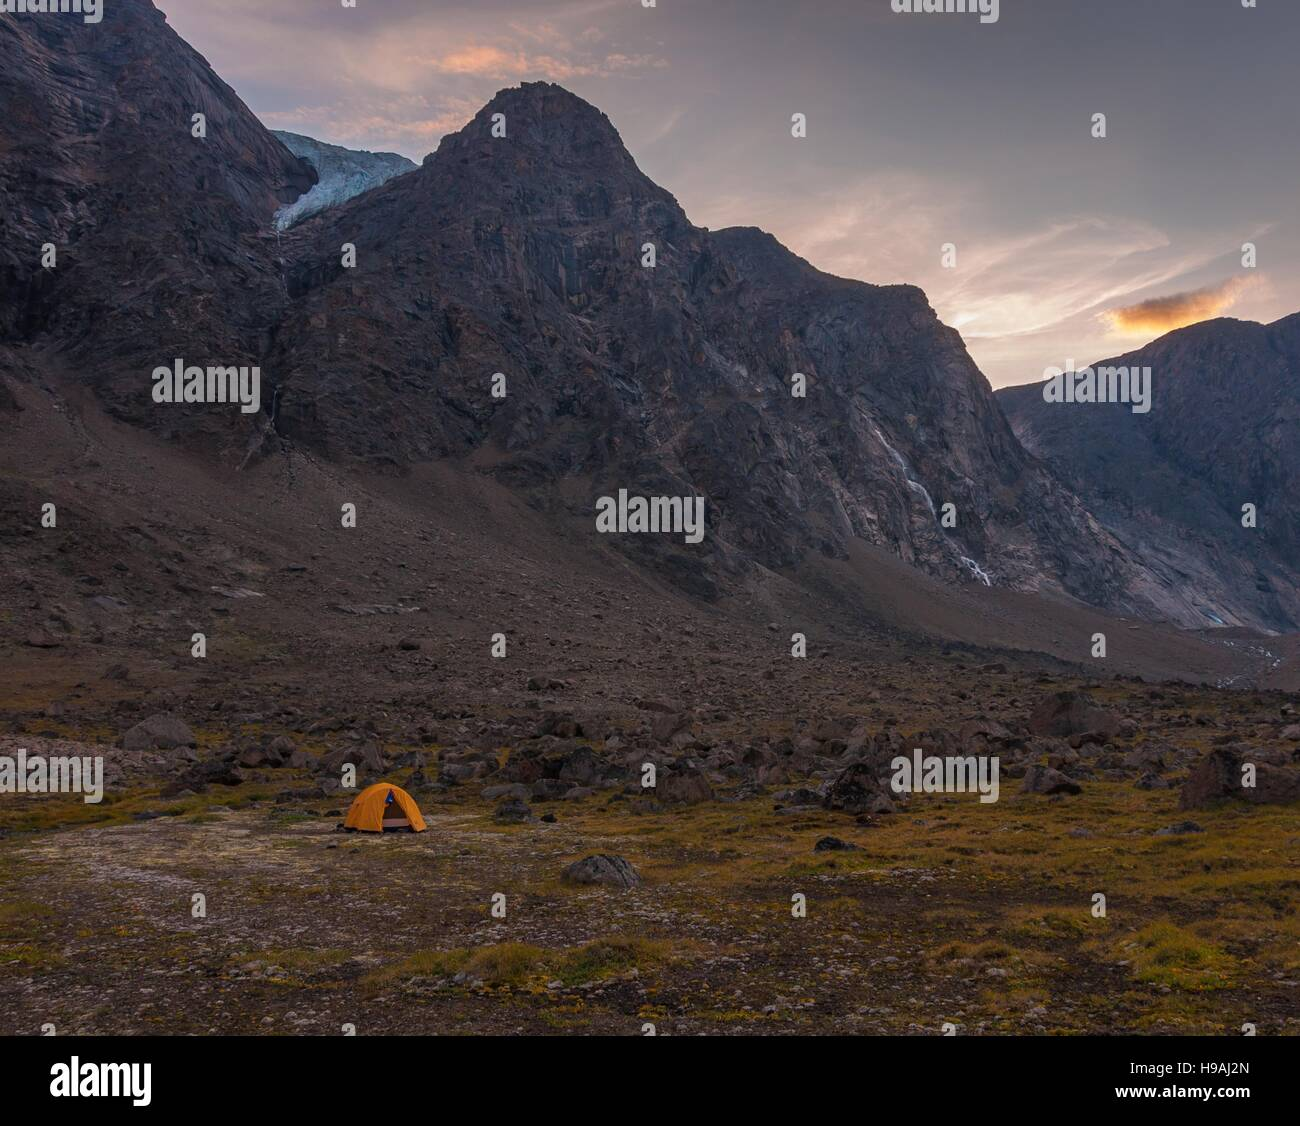 Base camping in Auyuittuq National Park scenery, Nunavut, Canada. 3/3 Stock Photo